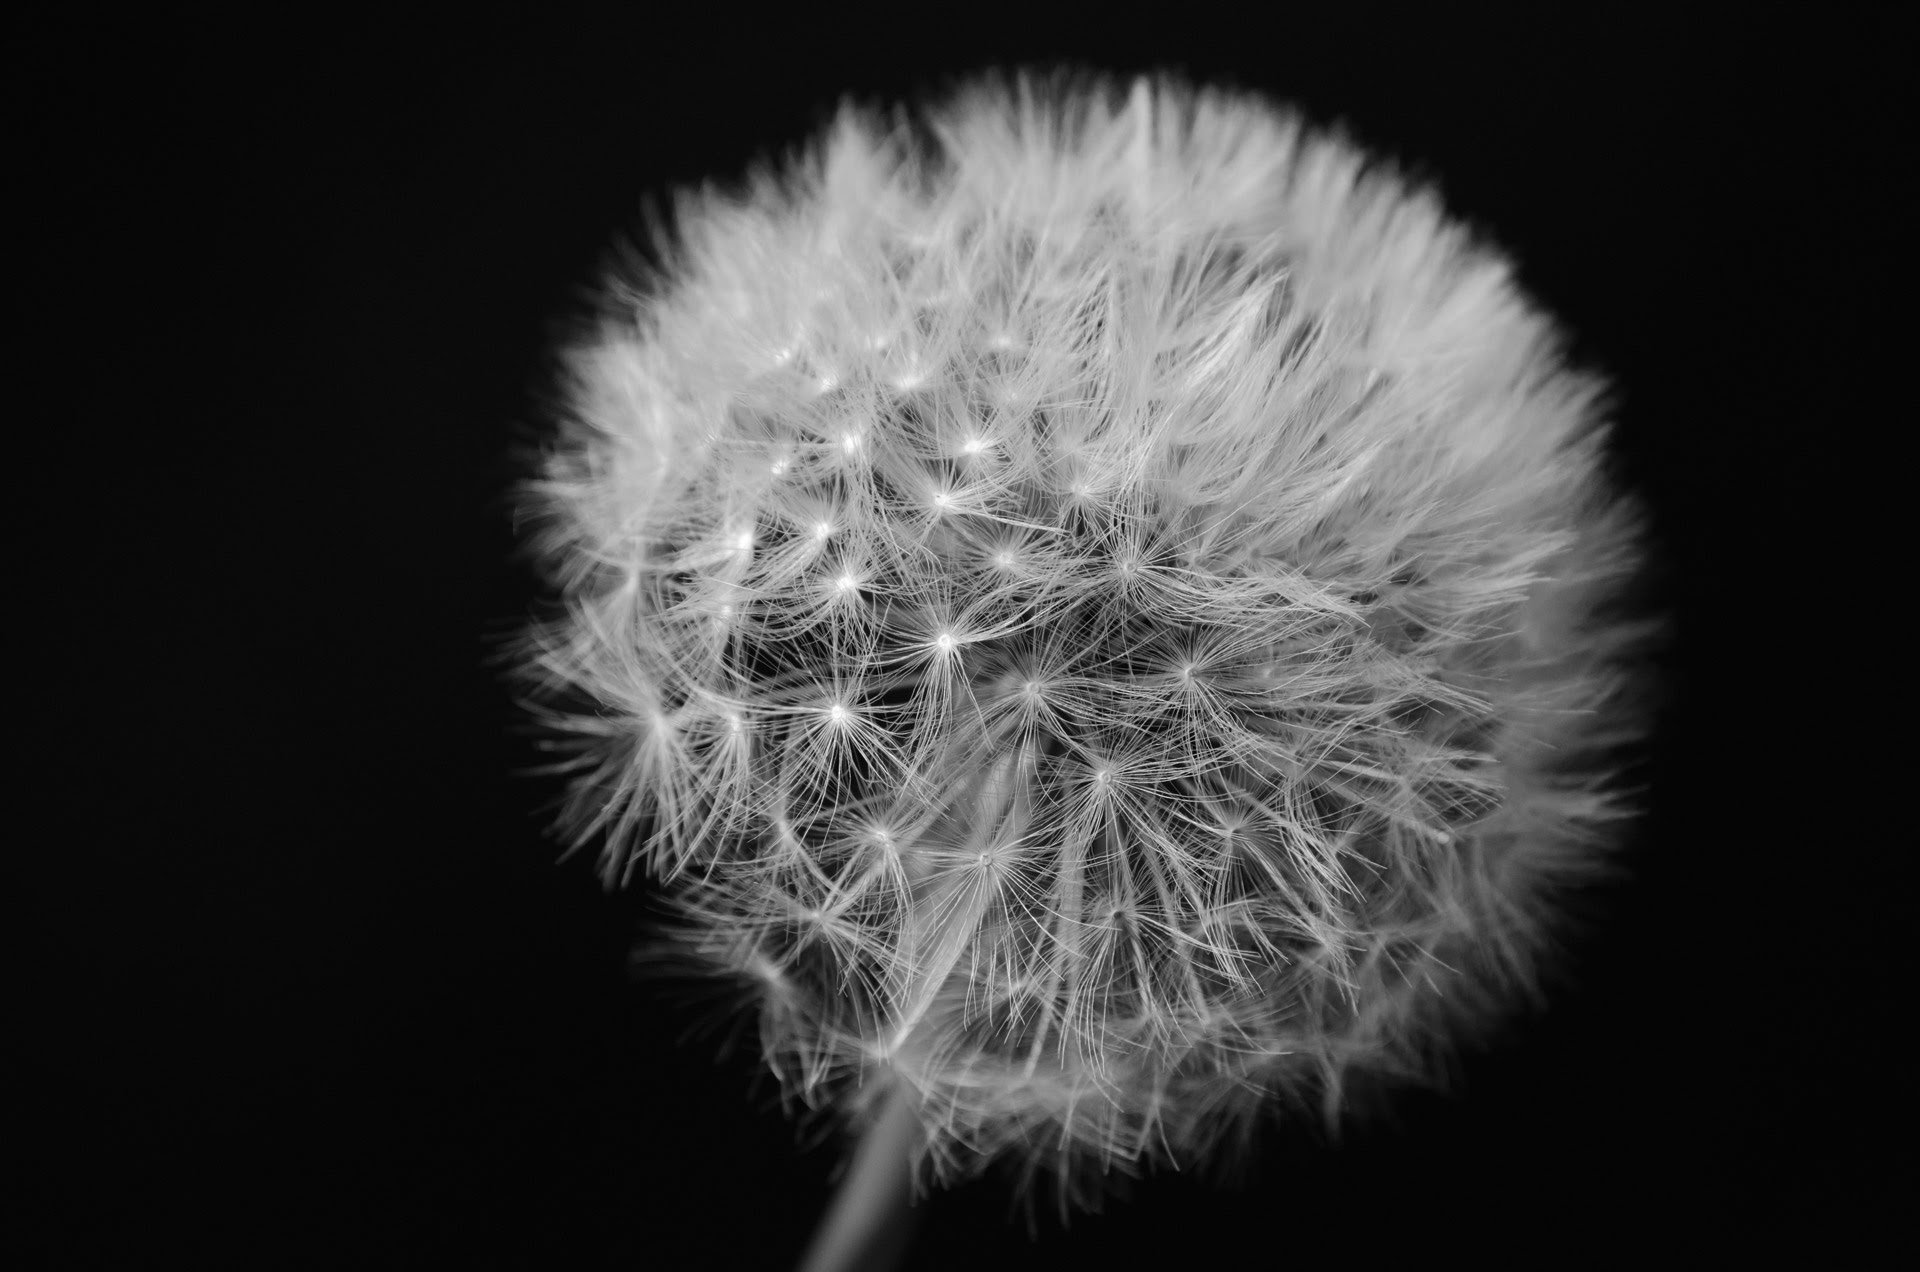 dandelion-on-black-background